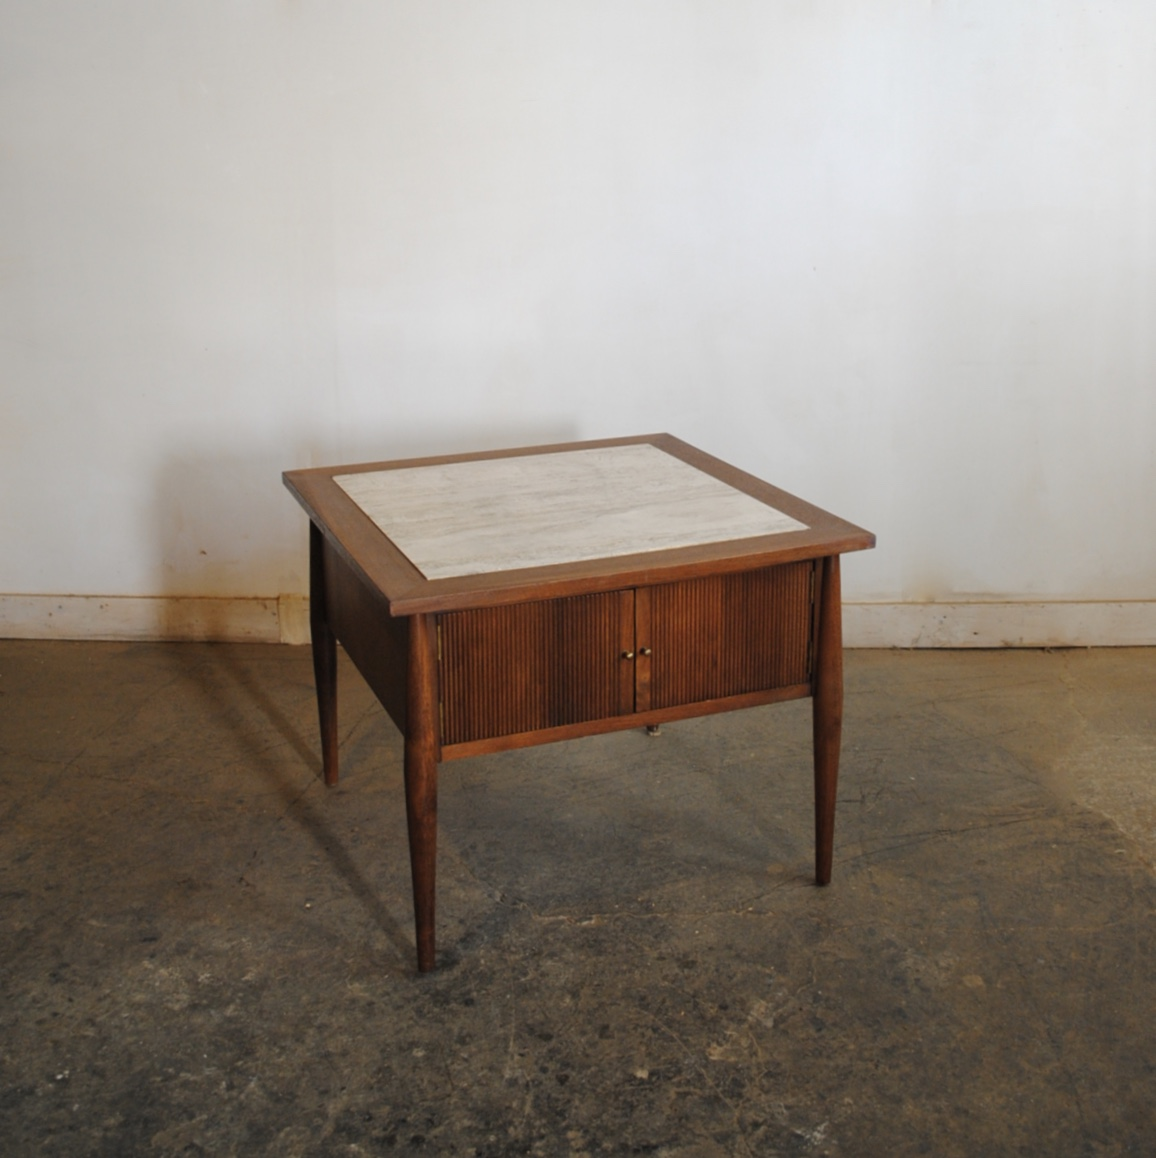 Mid Century Modern Walnut End Table With Italian Travertine Top. Dimensions  Are 26u2033 W X 26u2033 D X 20.5u2033 H. Please Contact Me With Any Questions.